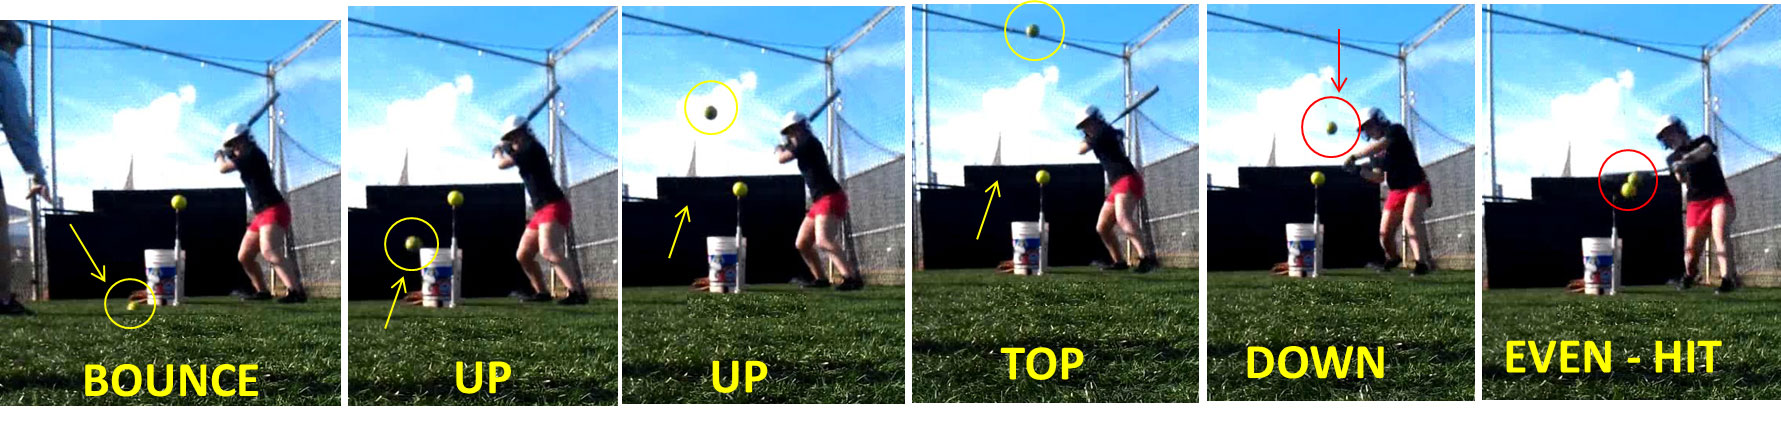 timing drill batting t tee teaching tool hitter hitters mechanics practice patience bounce up top down even hit